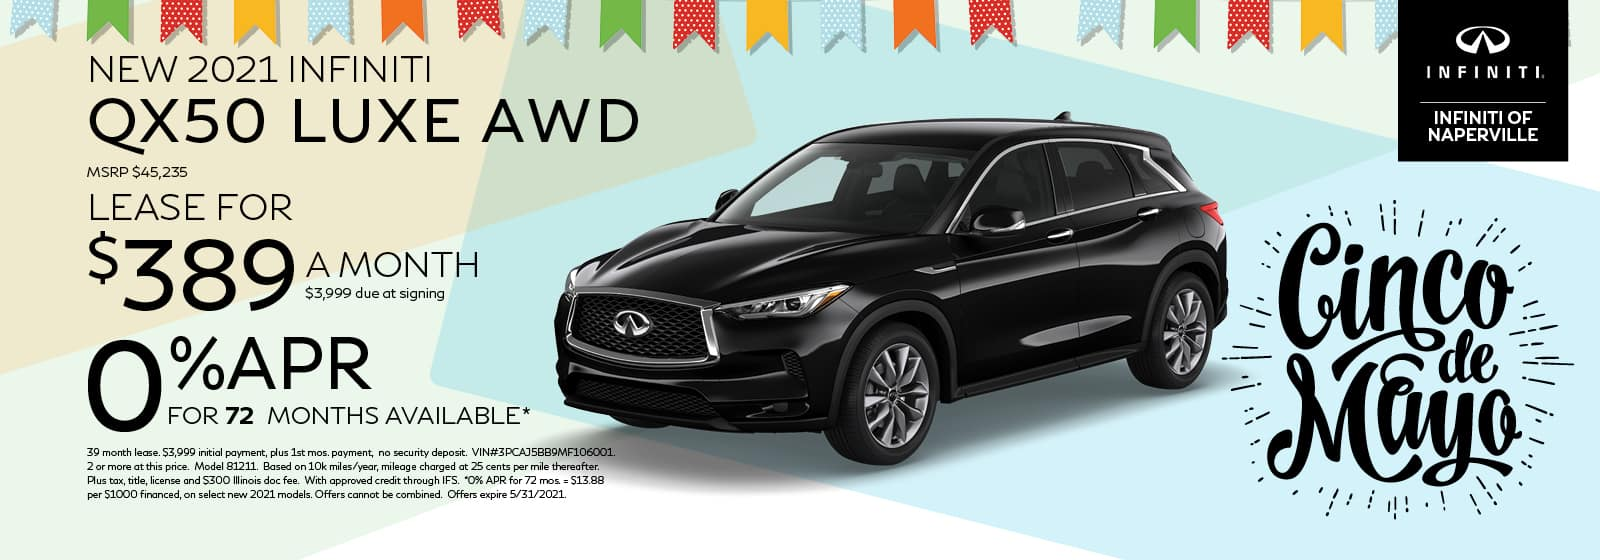 2021 INFINITI QX50 Lease or Finance Offer | INFINITI of Naperville